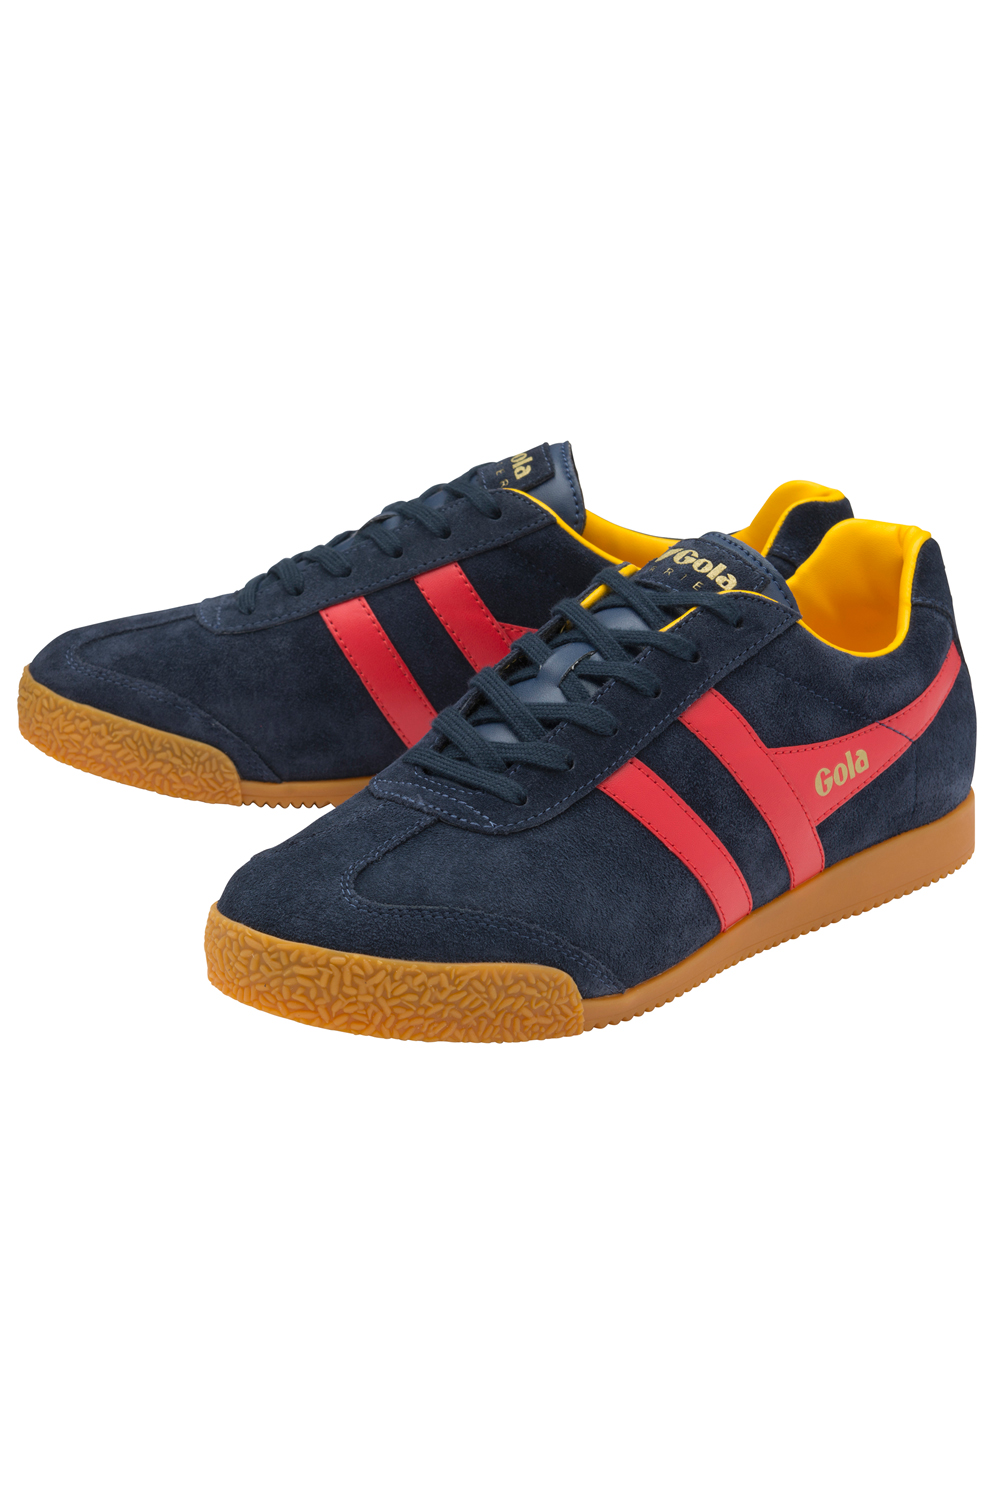 Gola-Harrier-Suede-Classic-Vintage-Lace-Up-Sneakers-Mens-Trainers-Low-Top-Shoes thumbnail 22